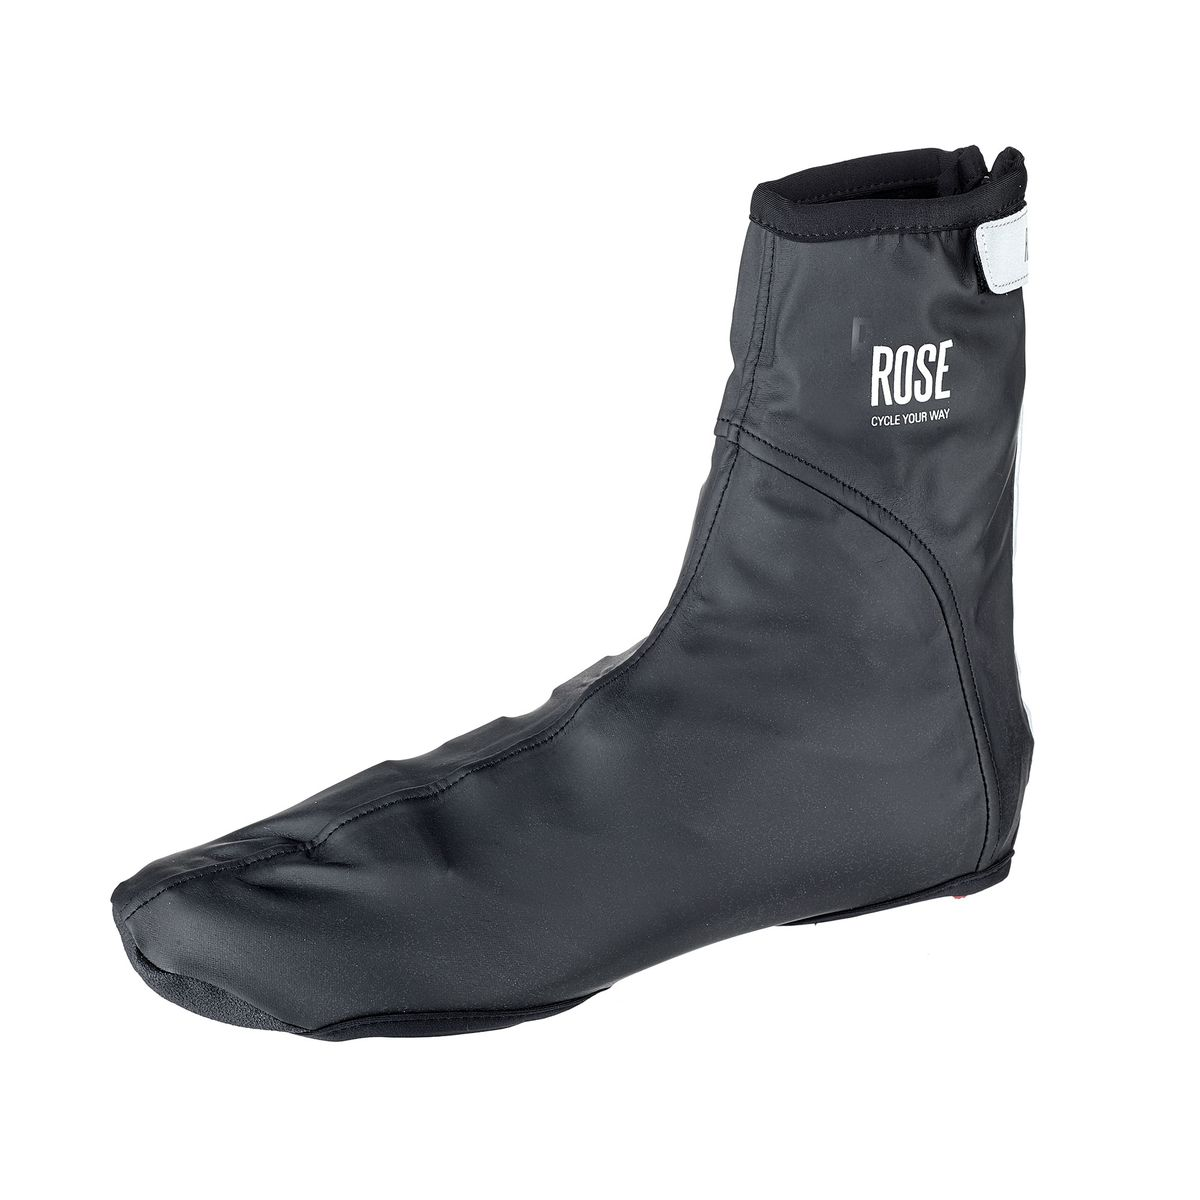 ROSE RAIN RACE II overshoes | shoecovers_clothes